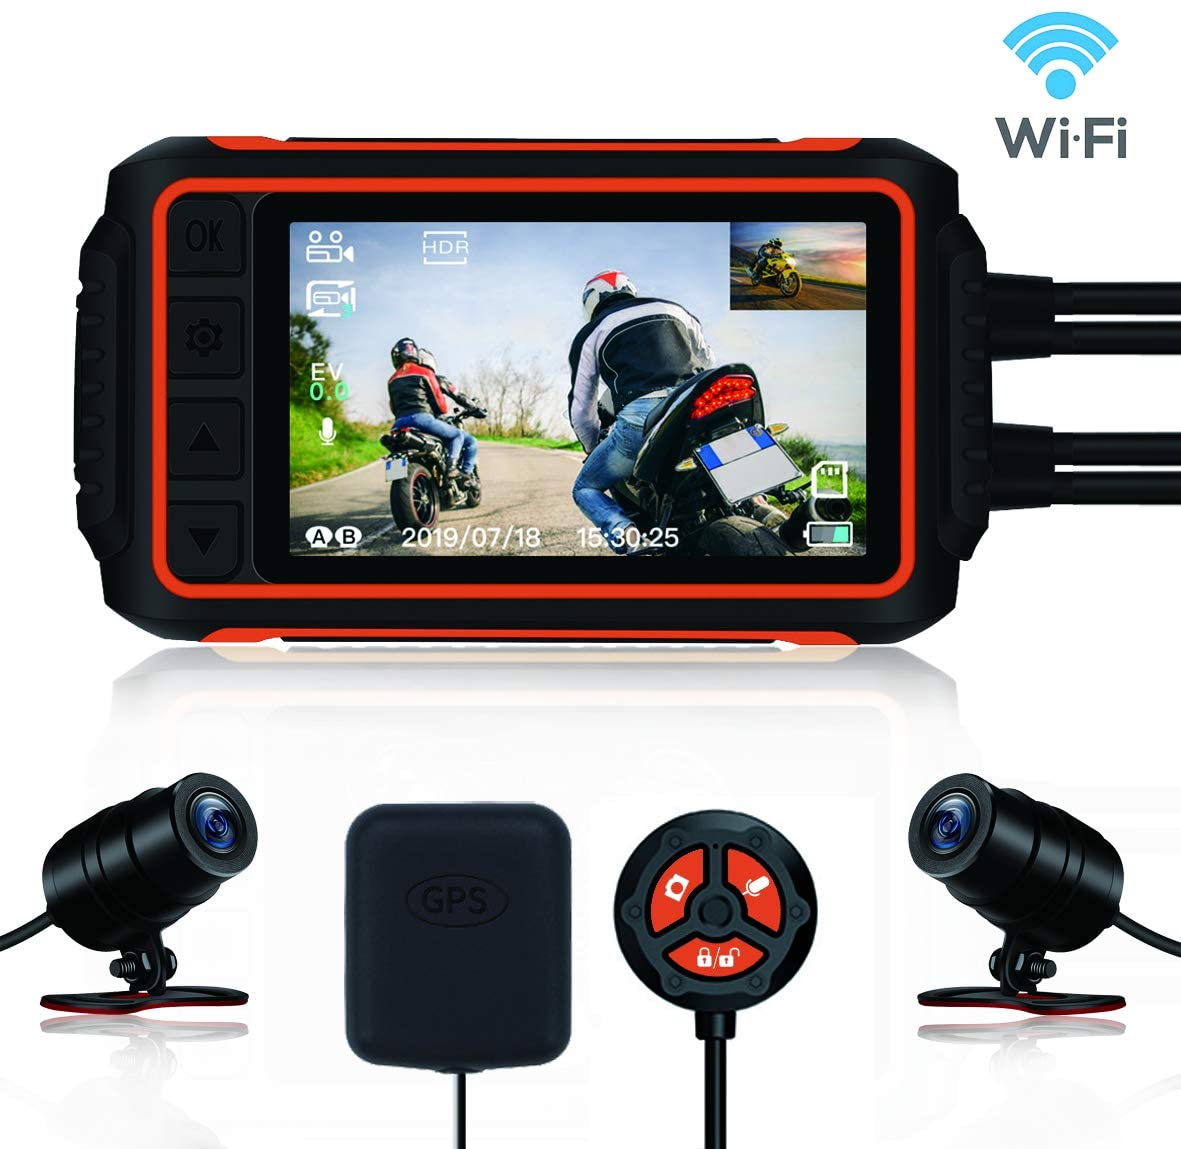 Motorcycle Dash Cam, Anti-Shake Waterproof Camera, 1080P Dual Lens, with GPS WiFi 150° Wide Angle Night Vision Recording